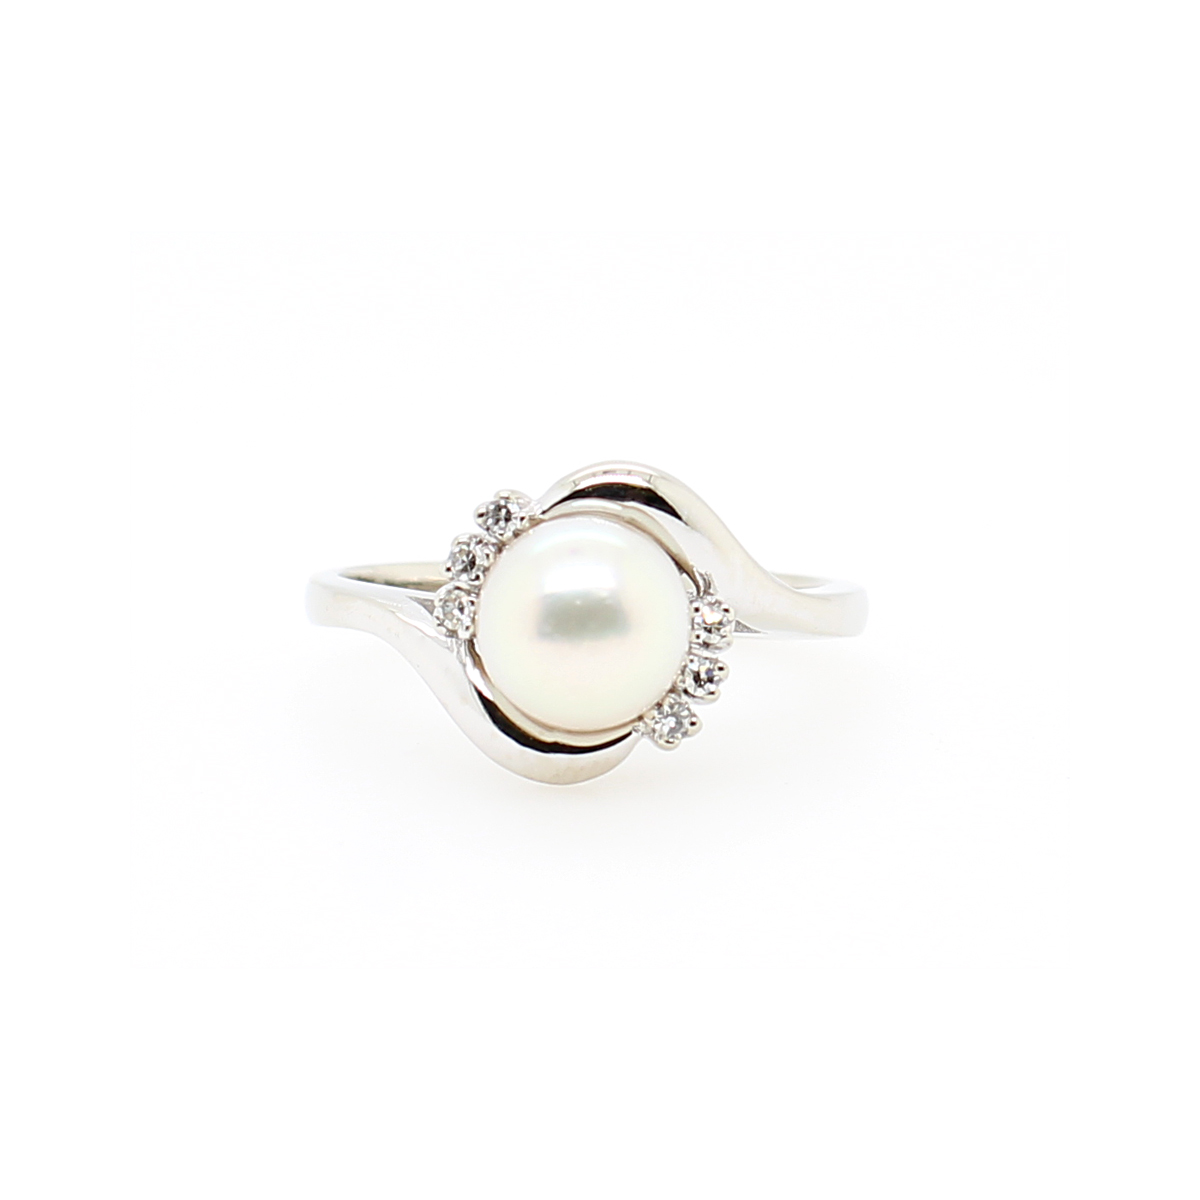 Vintage 14 Karat White Gold Akoya Pearl and Diamond Ring